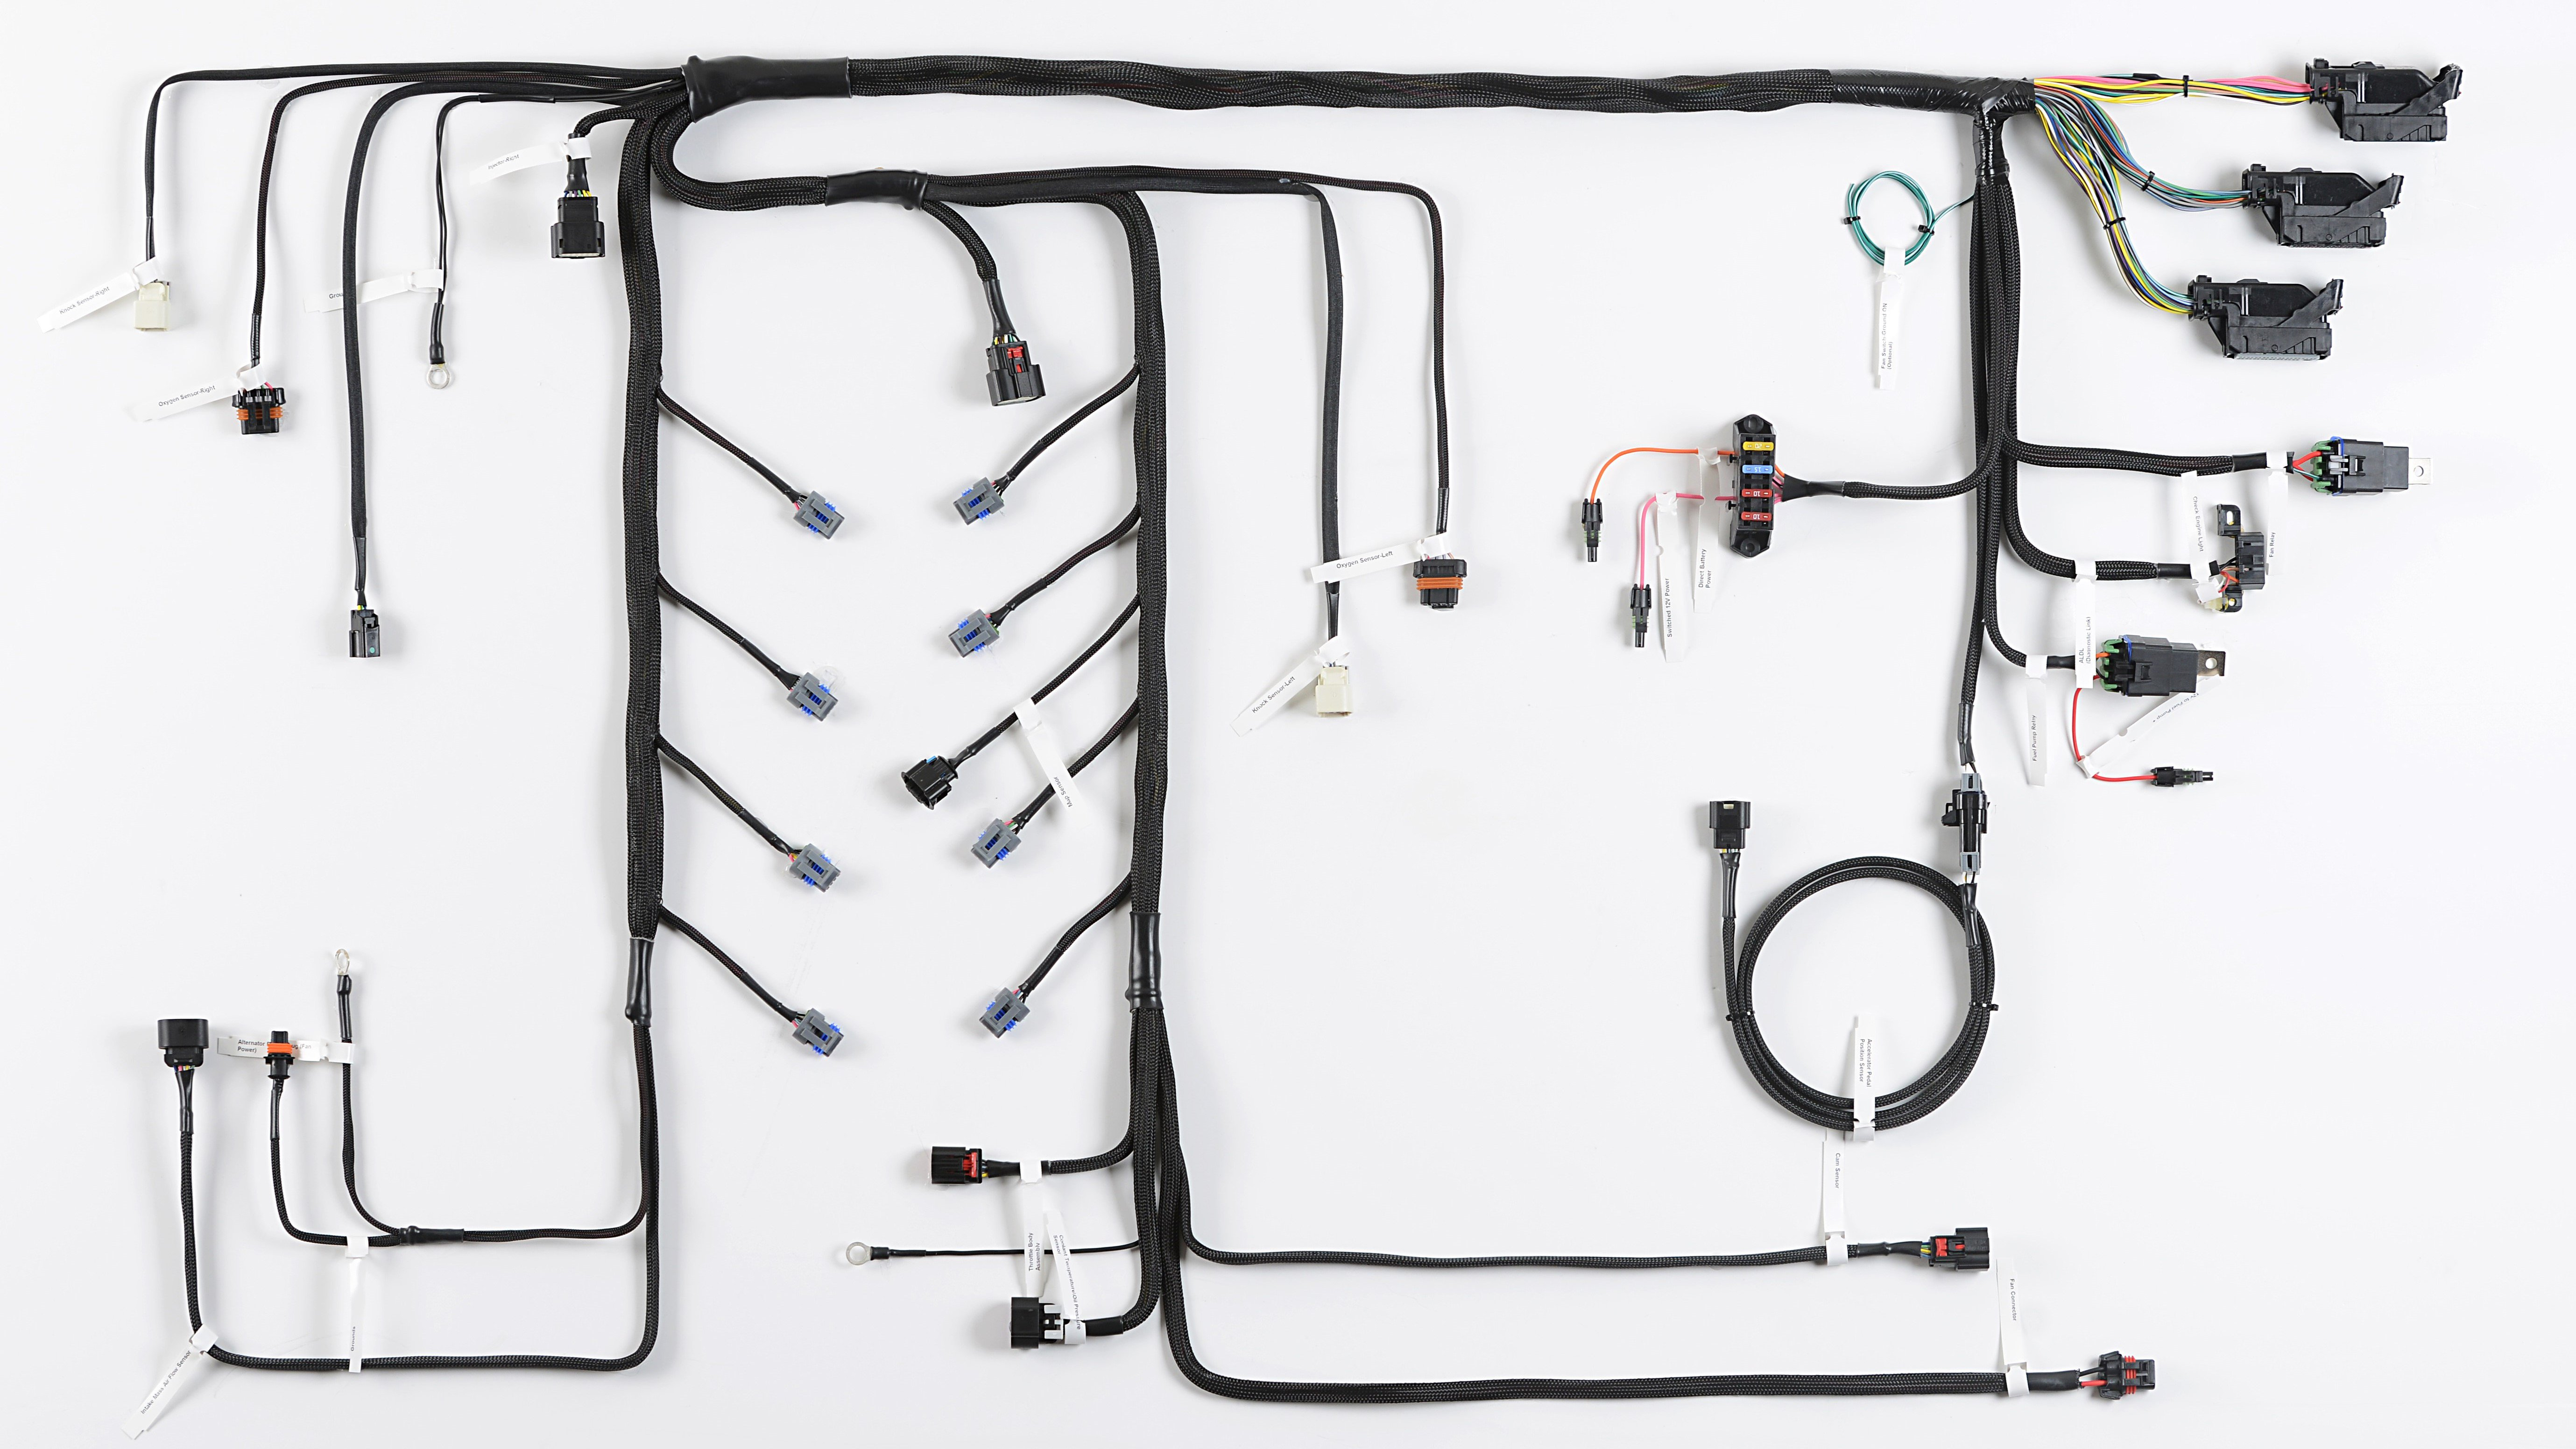 drag racing wiring harness wire it up ls swap harness options on a budget  wire it up ls swap harness options on